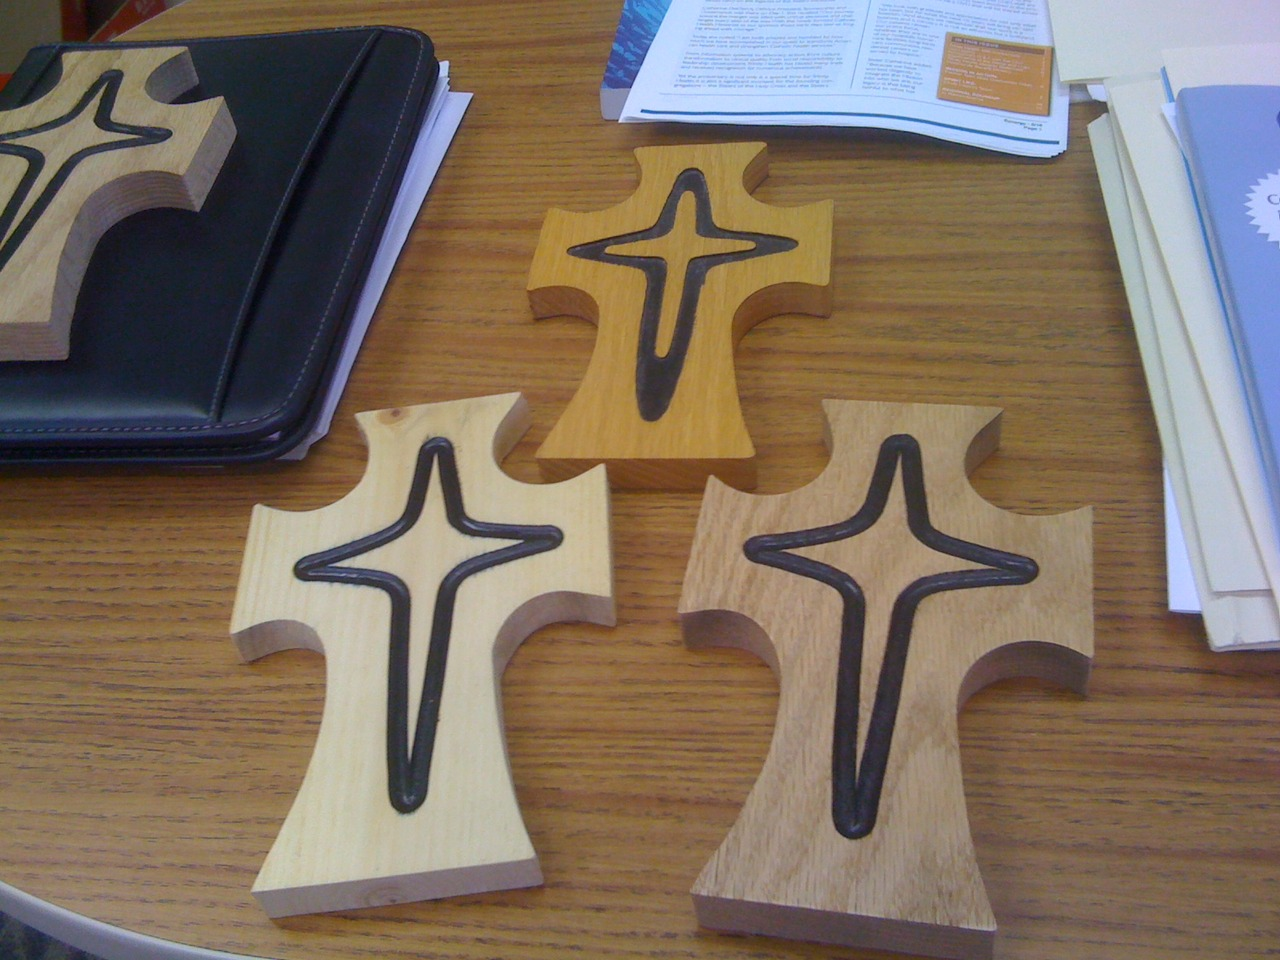 "Should we go with the oak or pine? I'm leaning toward the oak.   BTW, a Sister of Mercy recently shared with me the symbolism behind this ""Mercy Cross"" design.     Catherine McAuley experienced many tragedies growing up and found much meaning in Christ's suffering on the cross.   She spent many years living with a protestant family who did not allow crucifixes in the home. Instead, Catherine focused her prayer on a door, specifically the cross implied by the molding.   In the Mercy cross, the smaller cross within the larger cross symbolizes our suffering in the context of Jesus' suffering and paschal mystery.      Purchase your own Mercy Cross here ."